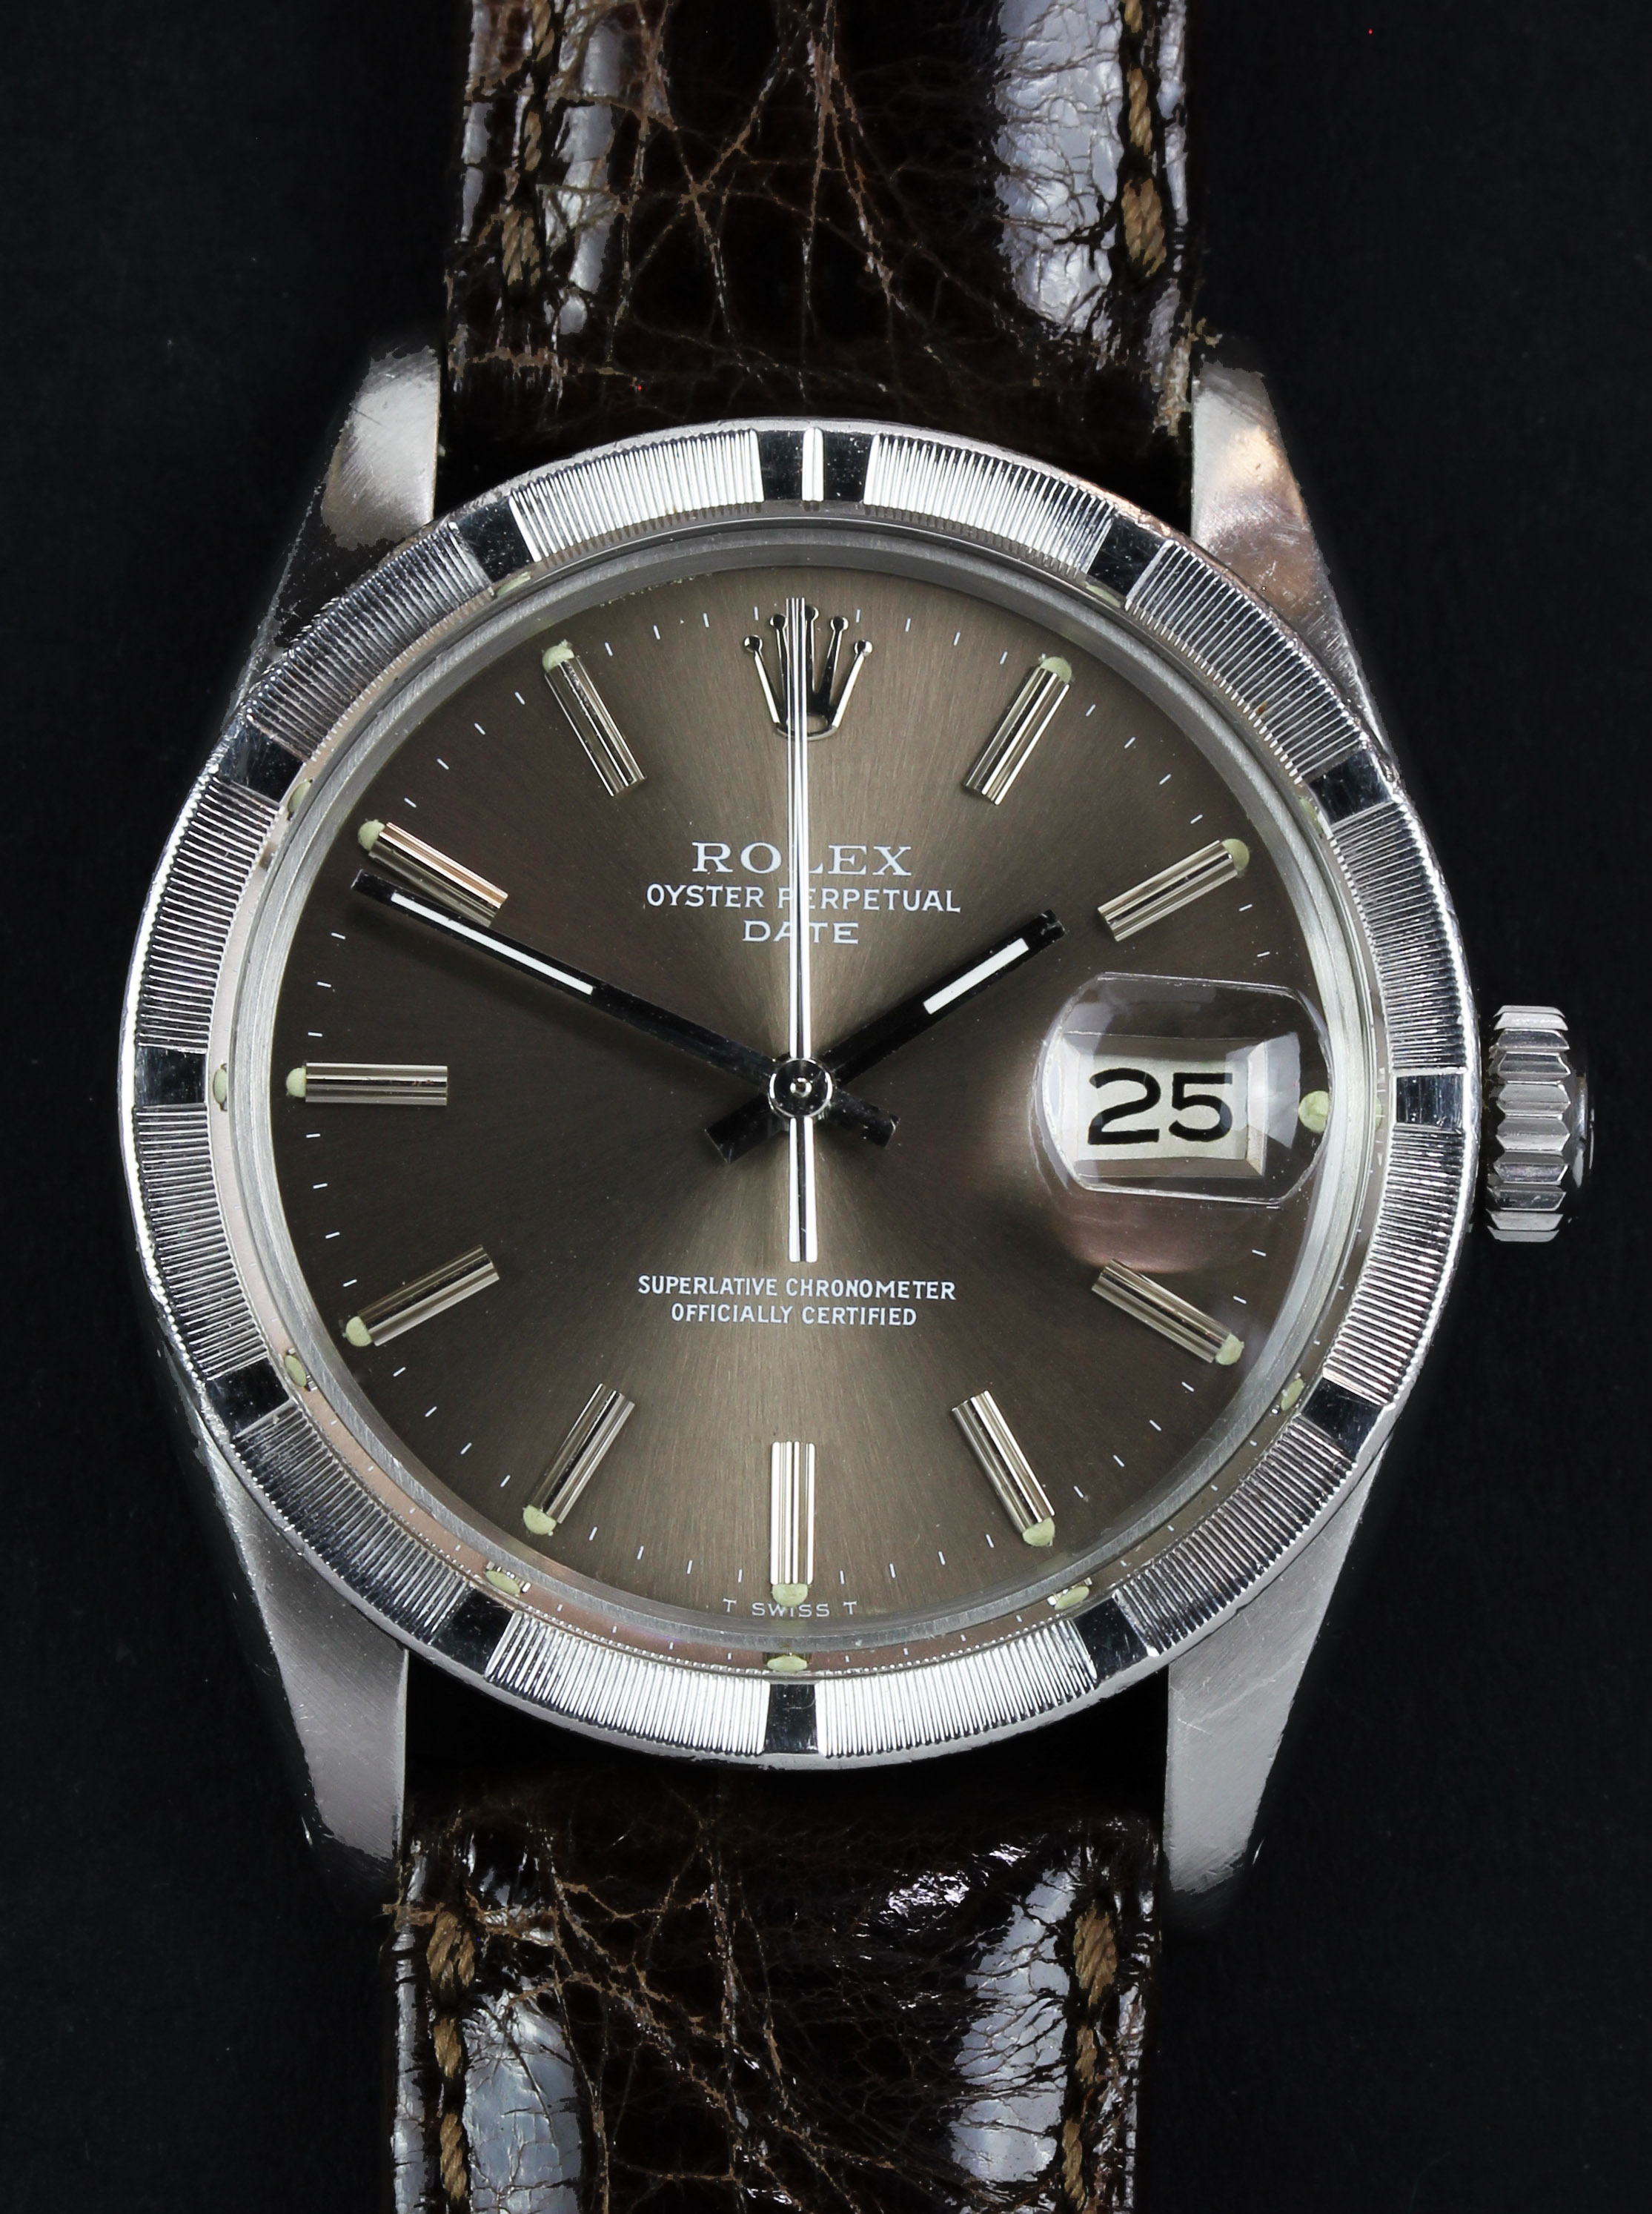 ROLEX Date, ref. 1501, from 1972